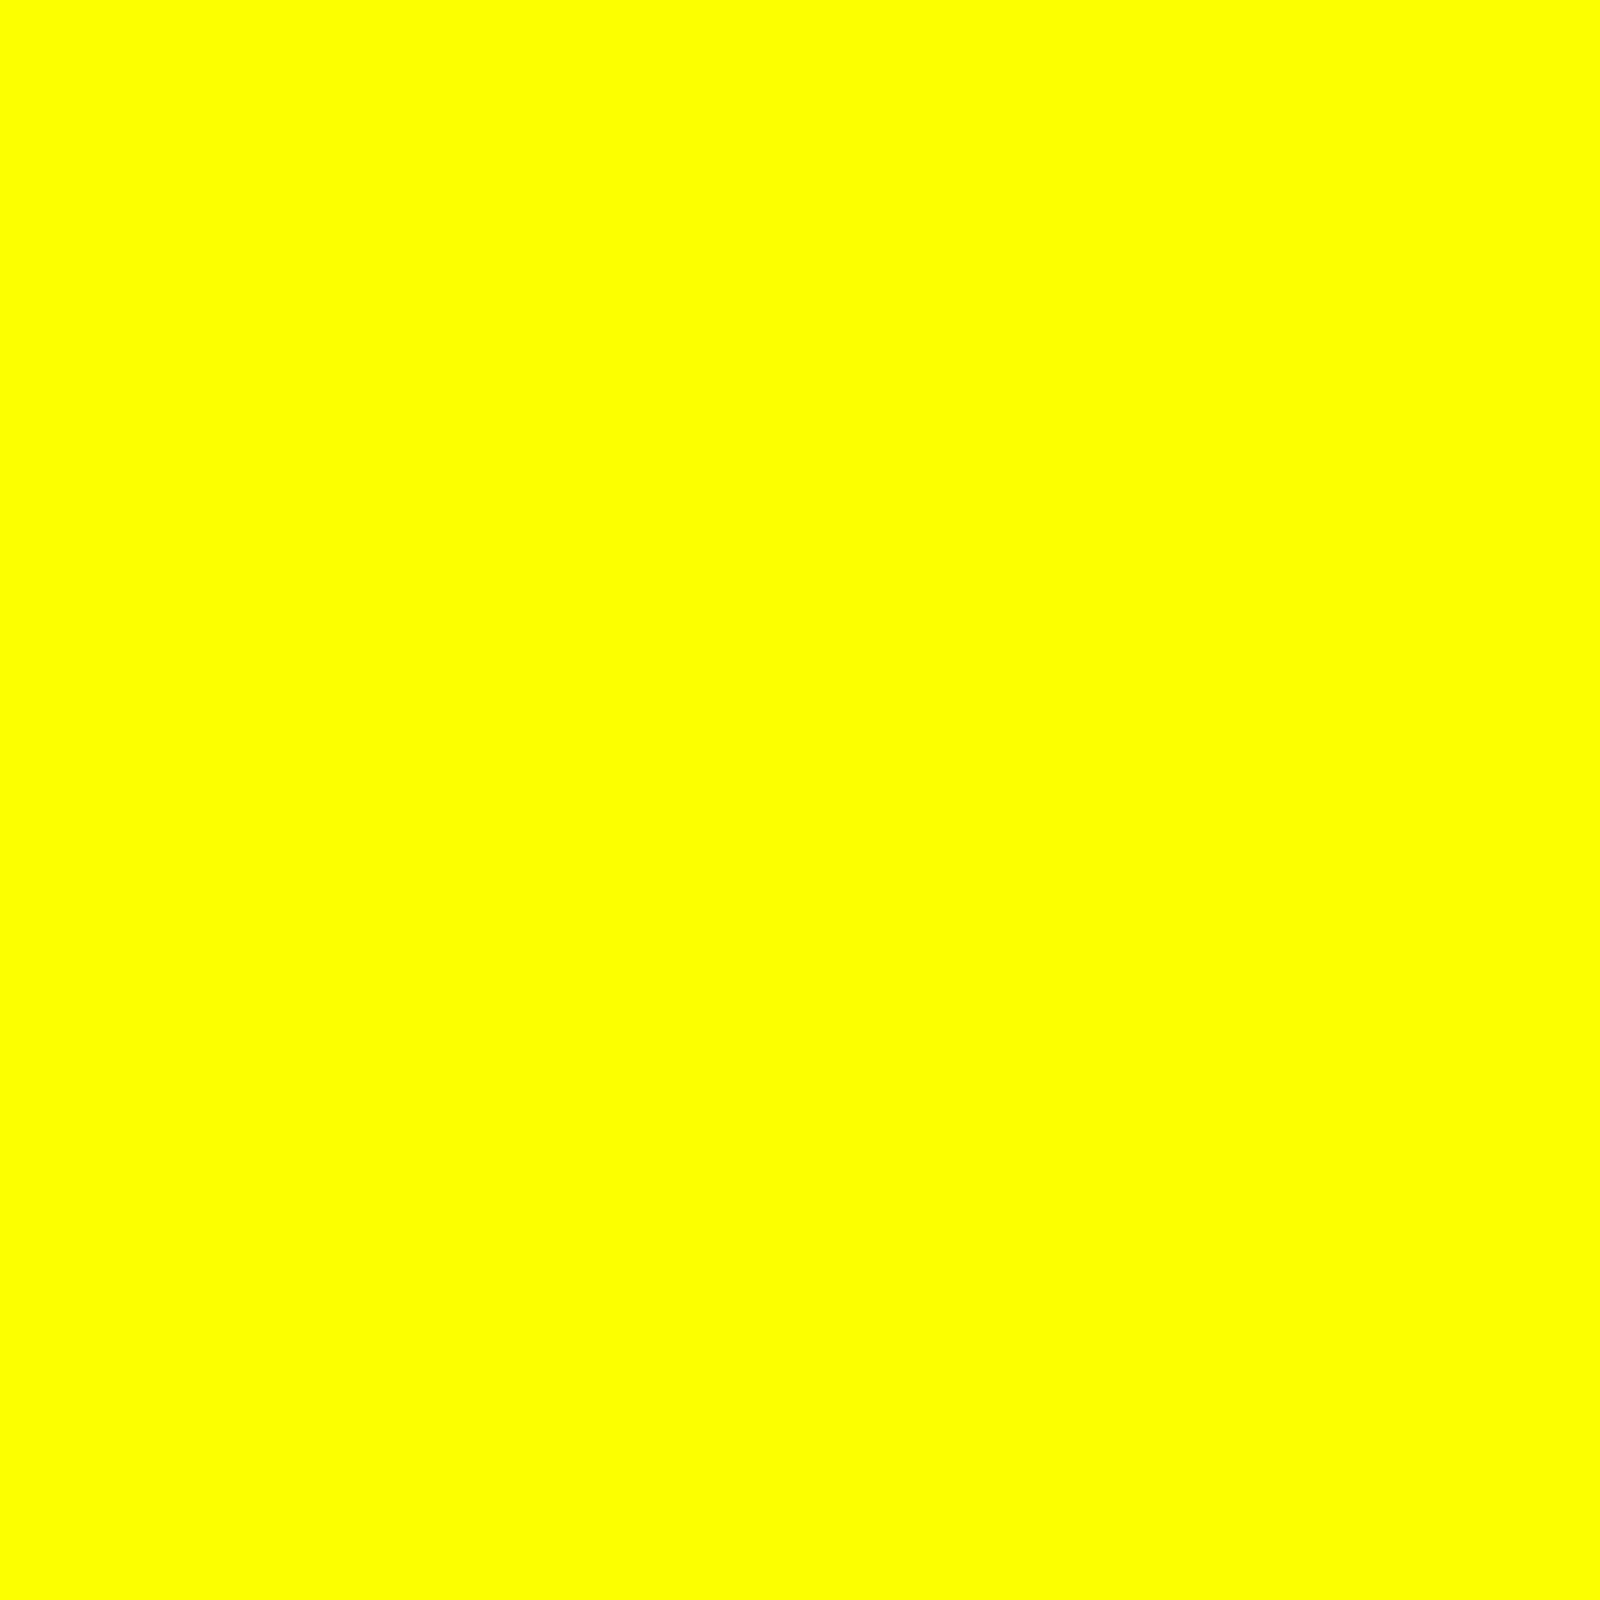 Colour Theory Amp Applications Yellow Presentaion